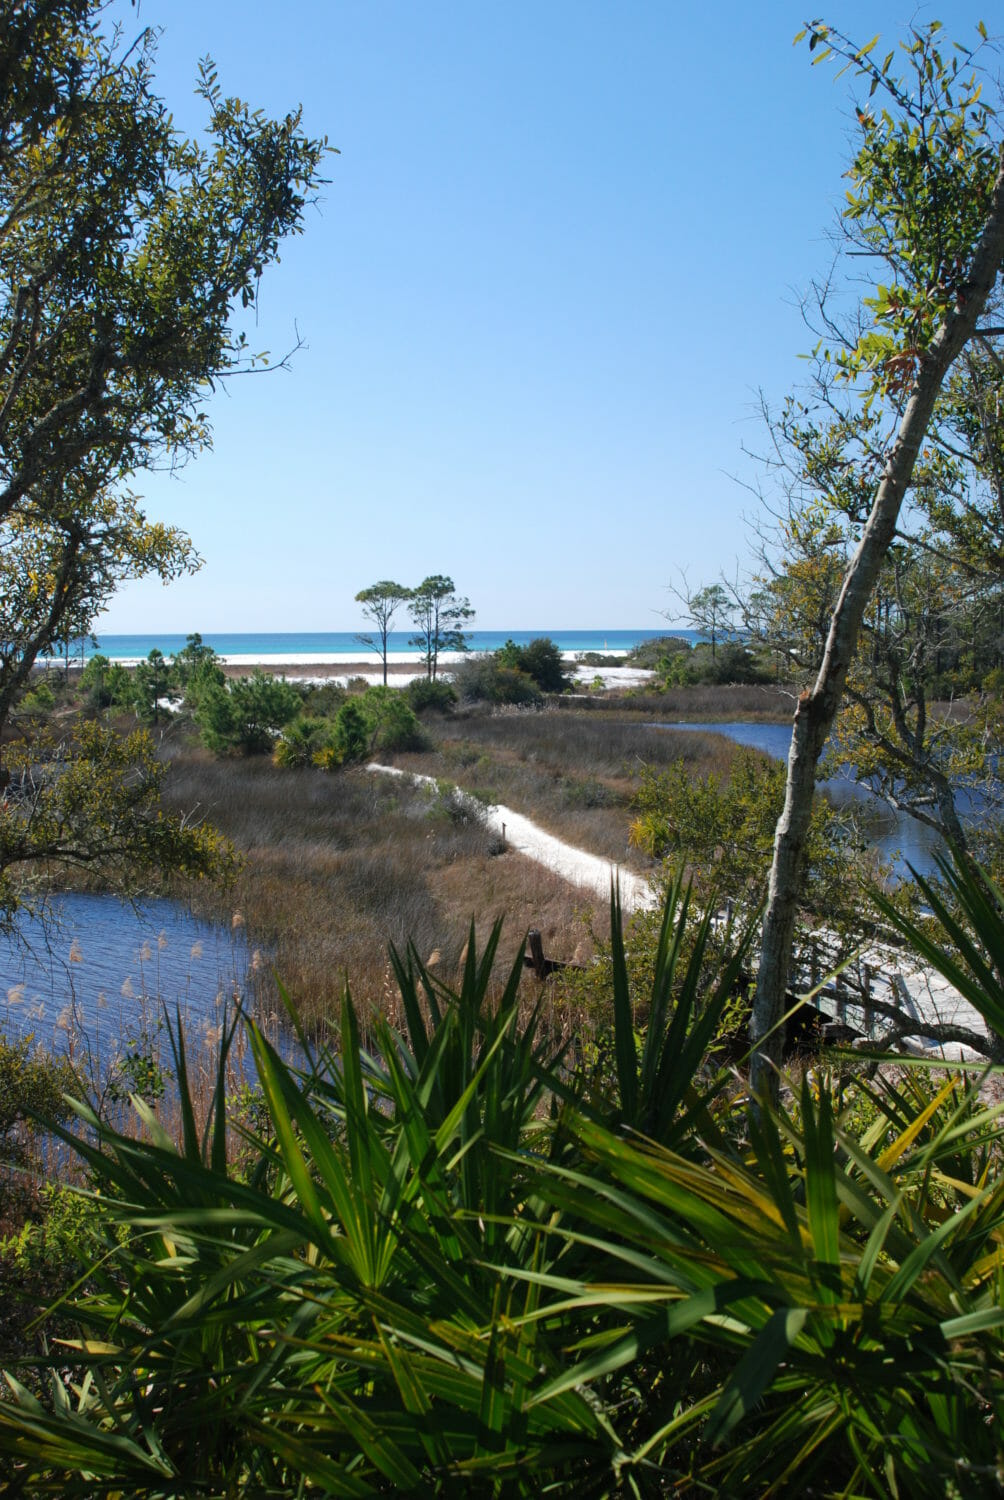 Best known for its beaches, bike paths, and barrier island parks, Panama City Beach is also a launch point for backpacking and day hikes in extensive natural lands to its north.